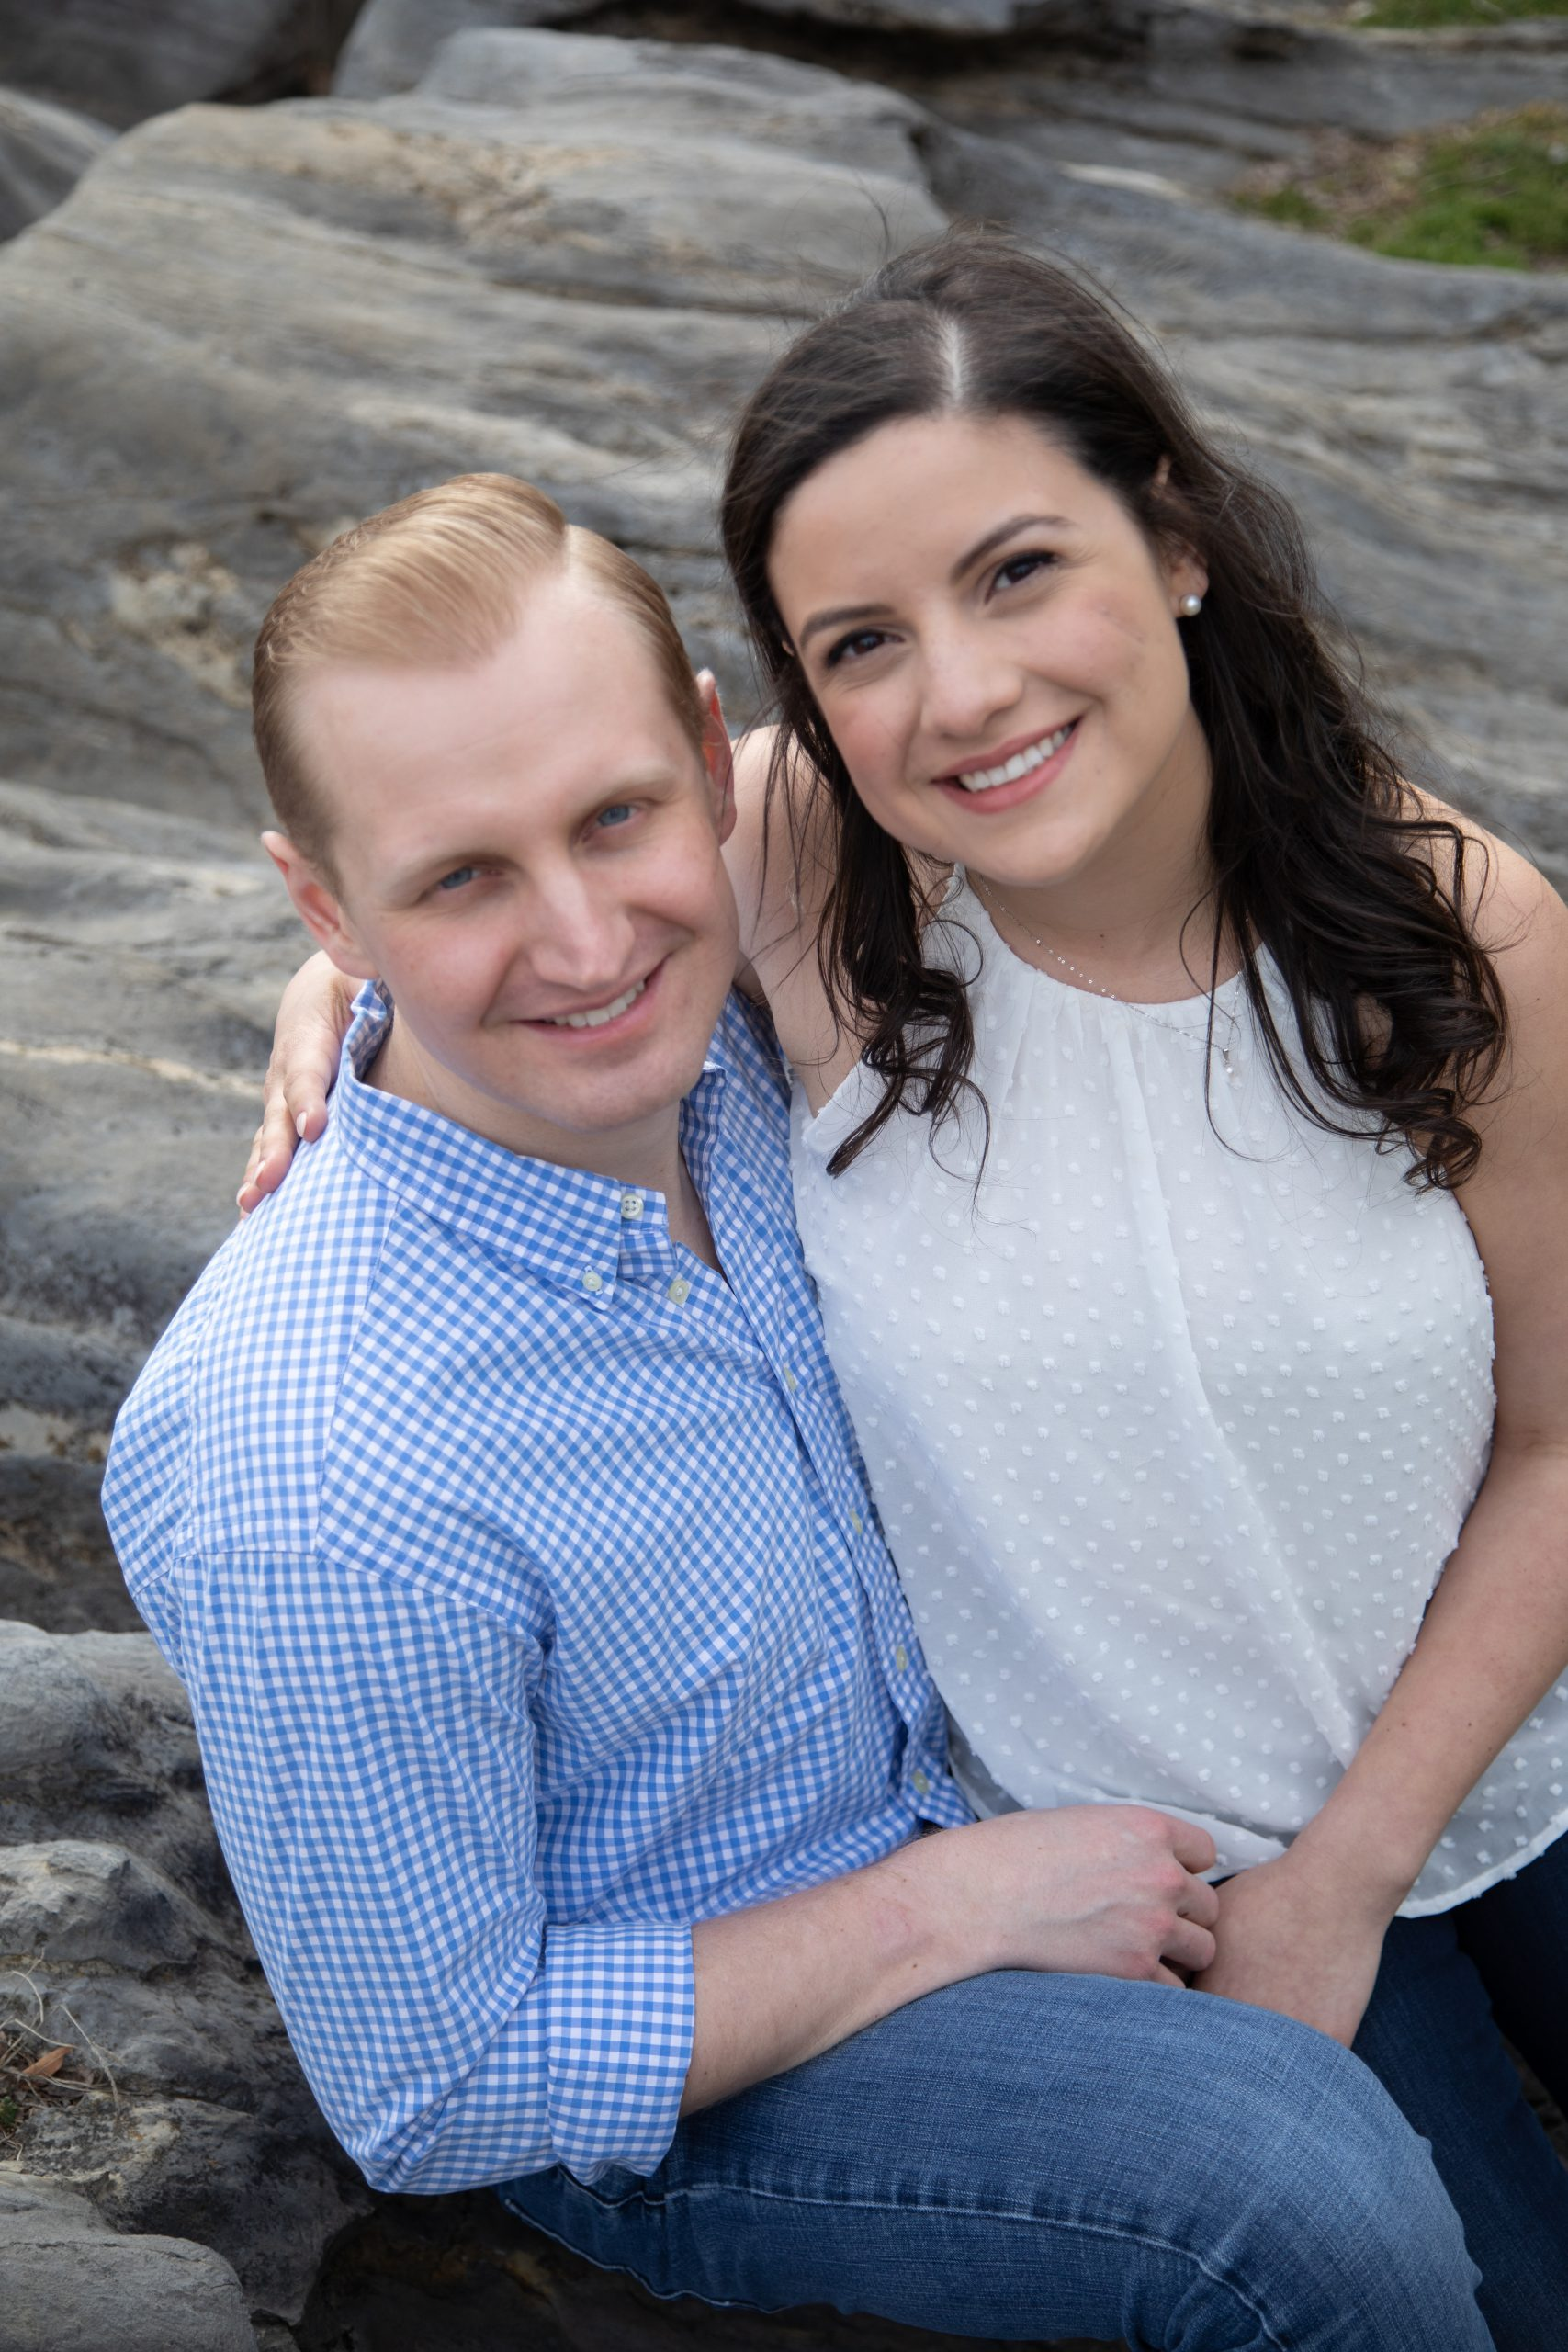 JMU engagement session. Stephanie Leigh Photography & Design